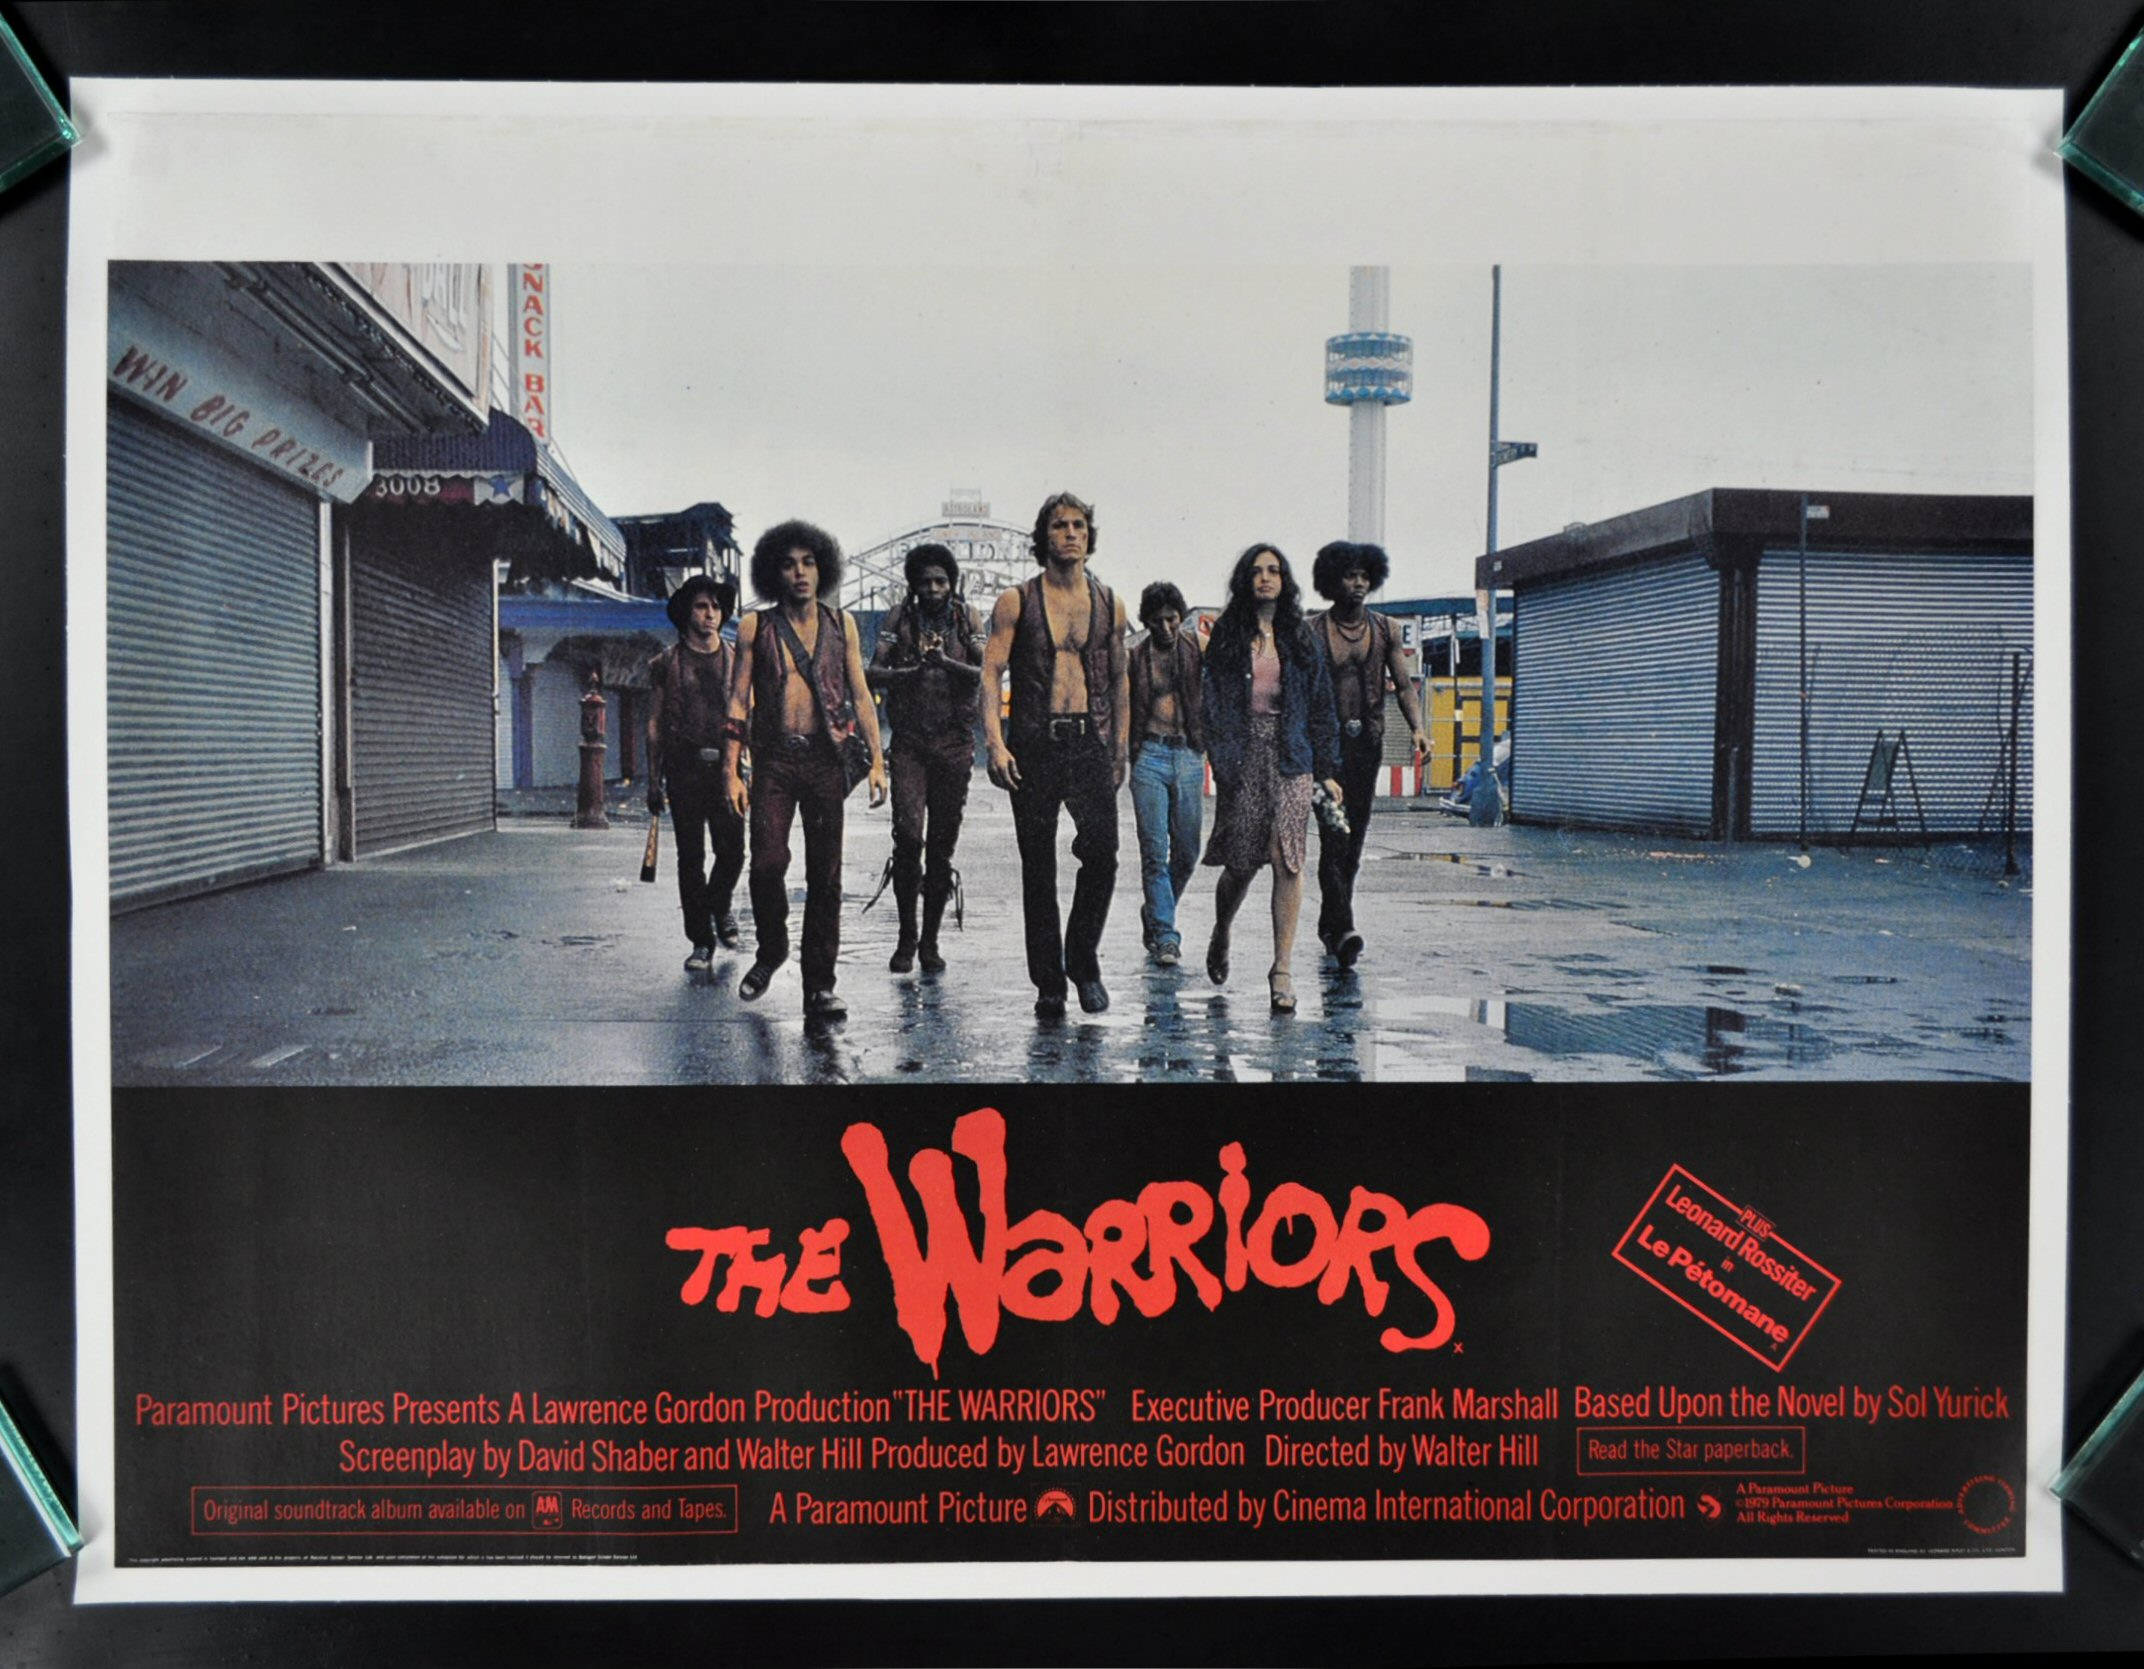 WARRIORS   CineMasterpiec es BRITISH U K  ORIGINAL MOVIE POSTER 1979The Warriors Movie Poster